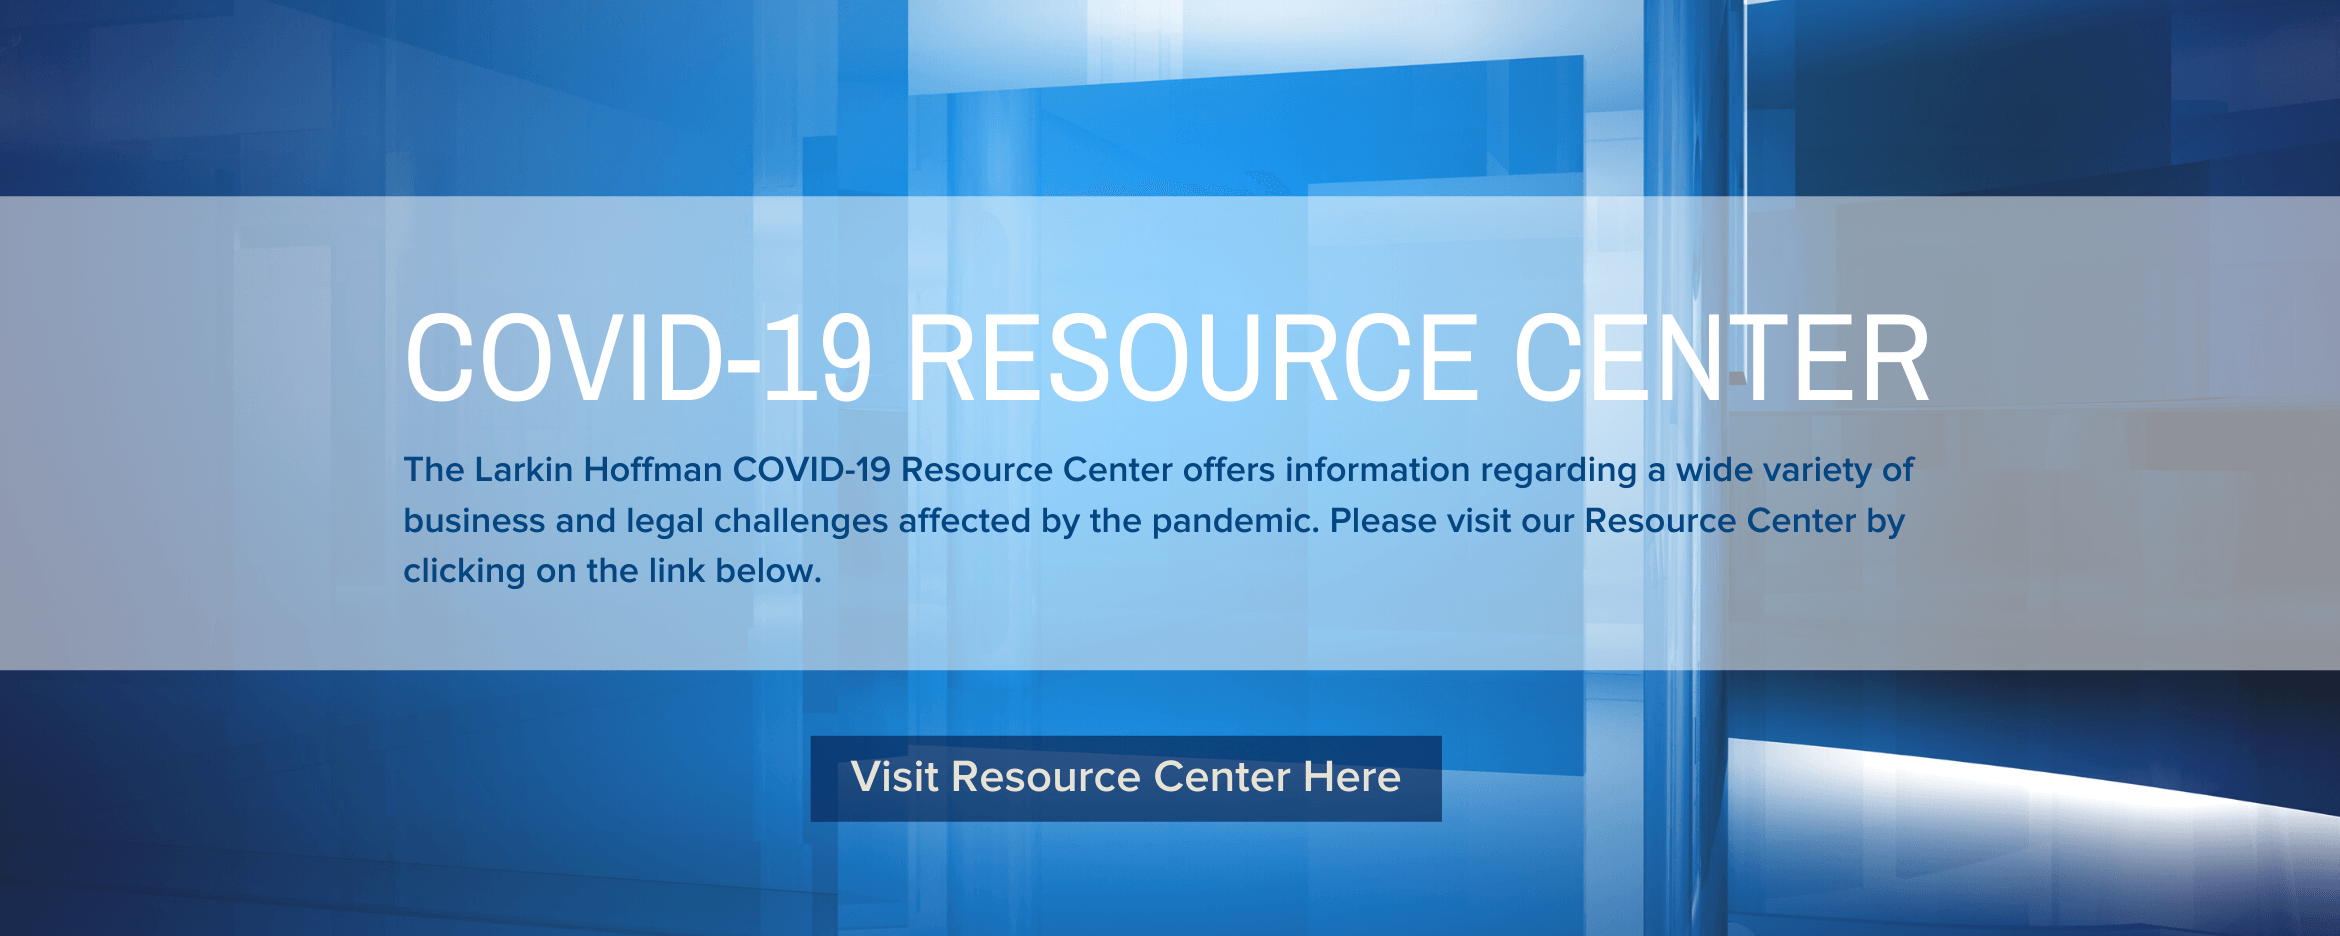 Image of coronavirus resource center banner with link to resource center